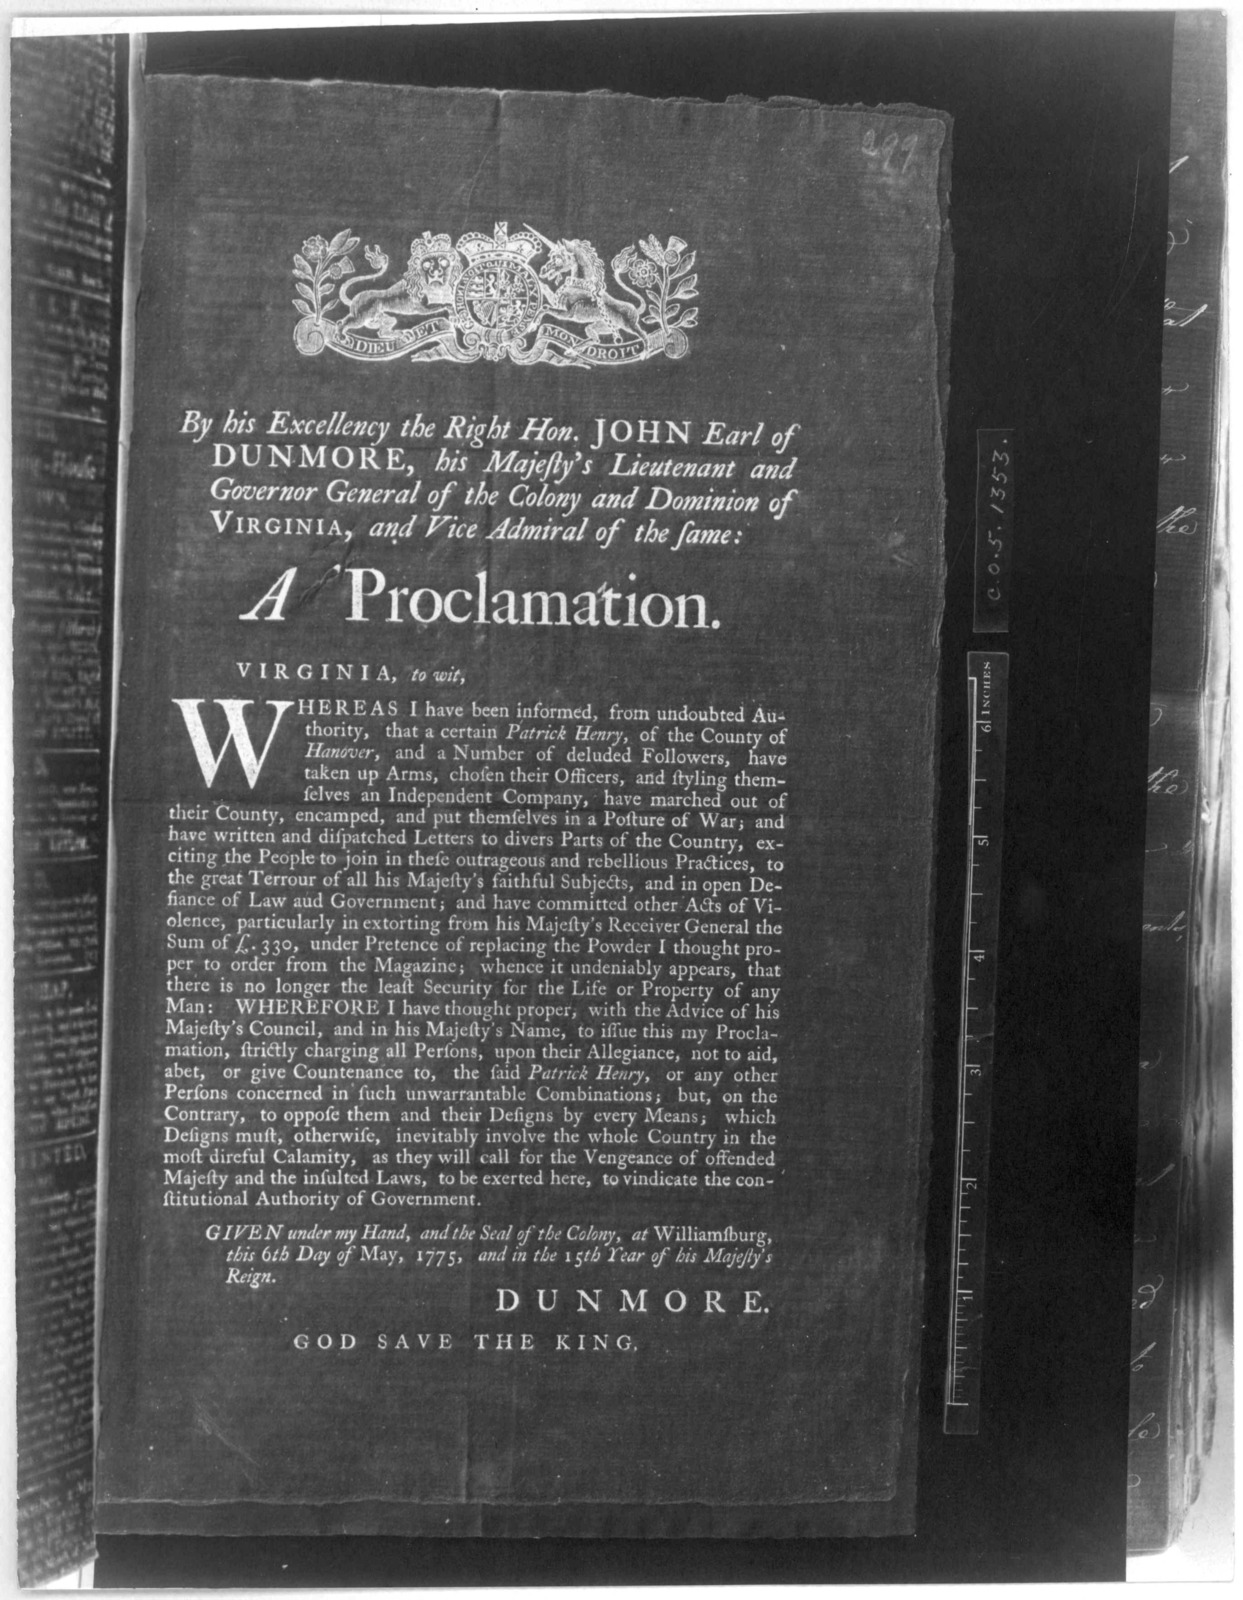 By his Excellency the Right Hon. John Earl of Dunmore, his Majesty's Lieutenant and Governor General of the Colony and Dominion of Virginia, and Vice admiral of the same: A proclamation. Virginia, to wit. Whereas I have been informed that a cert